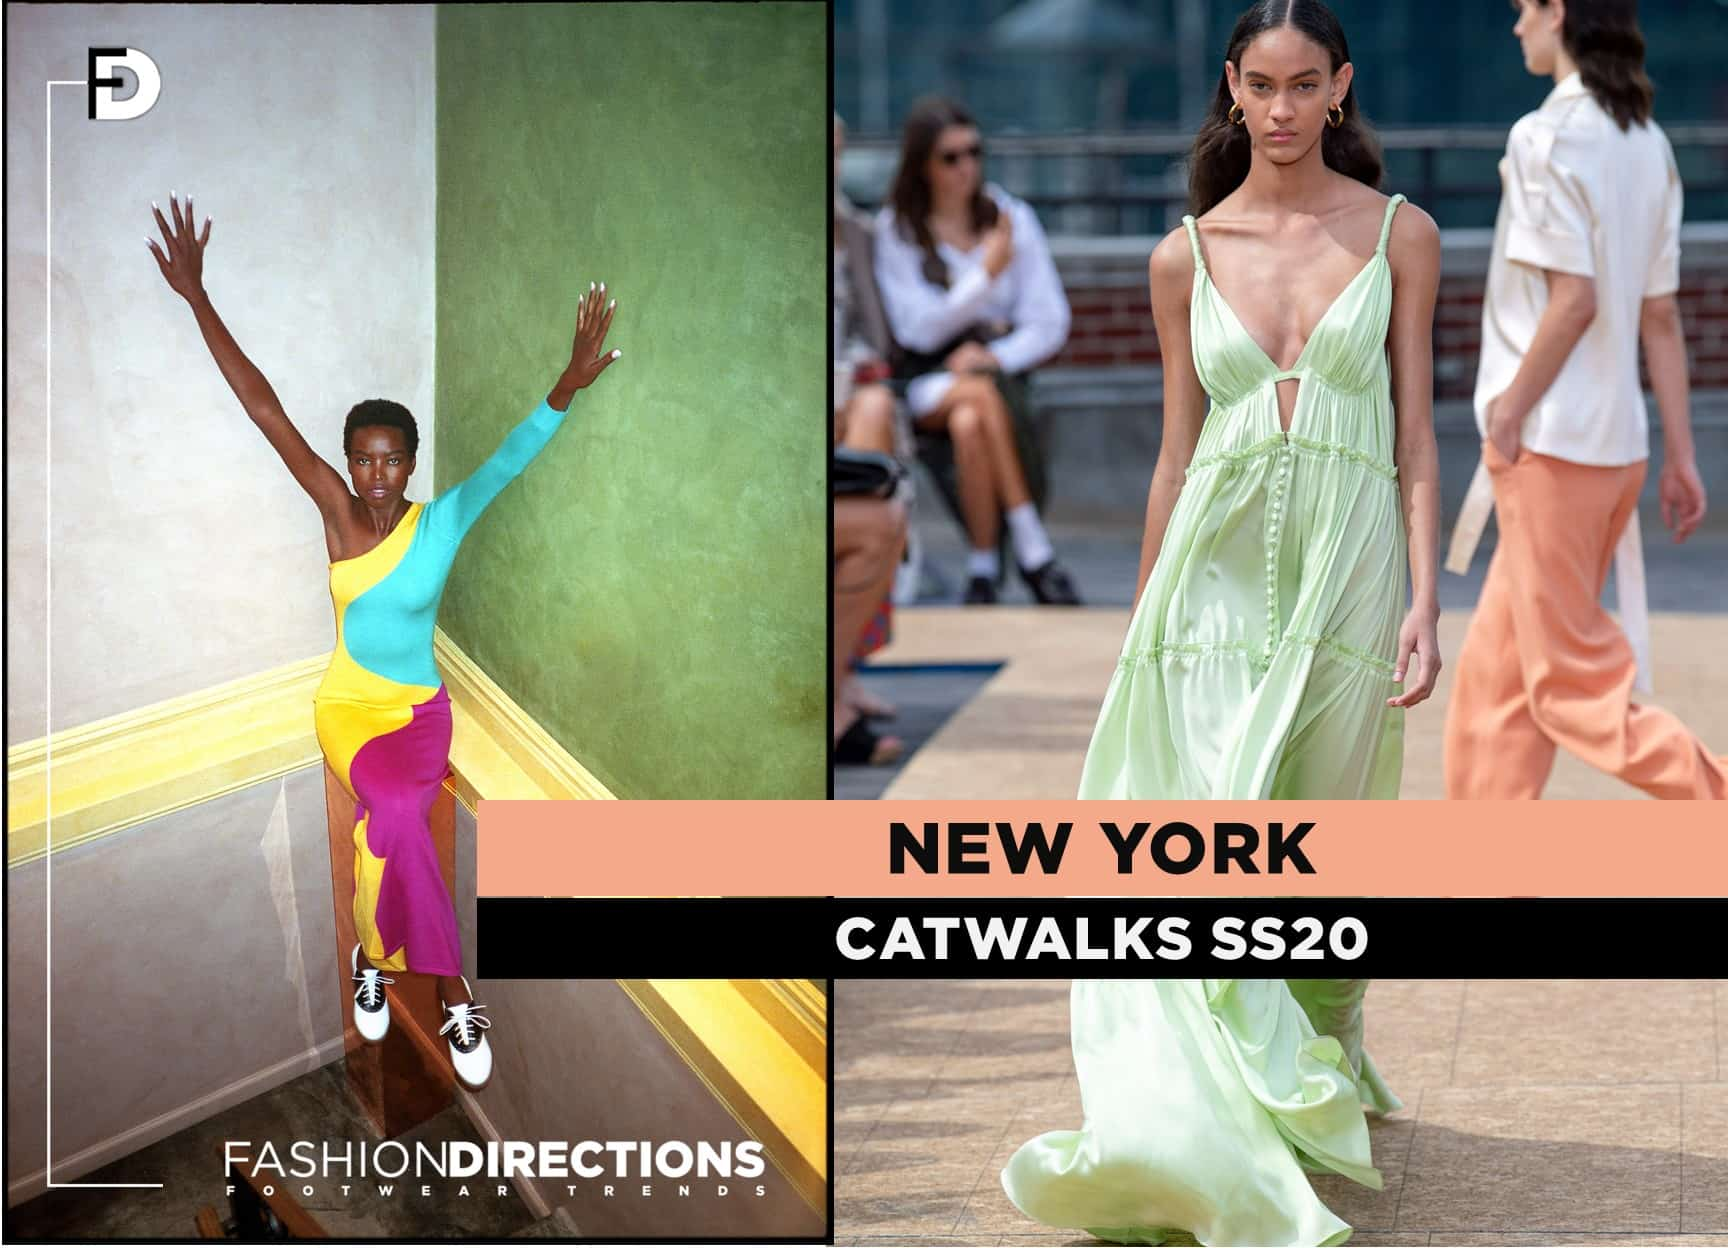 NEW YORK CATWALKS SS20